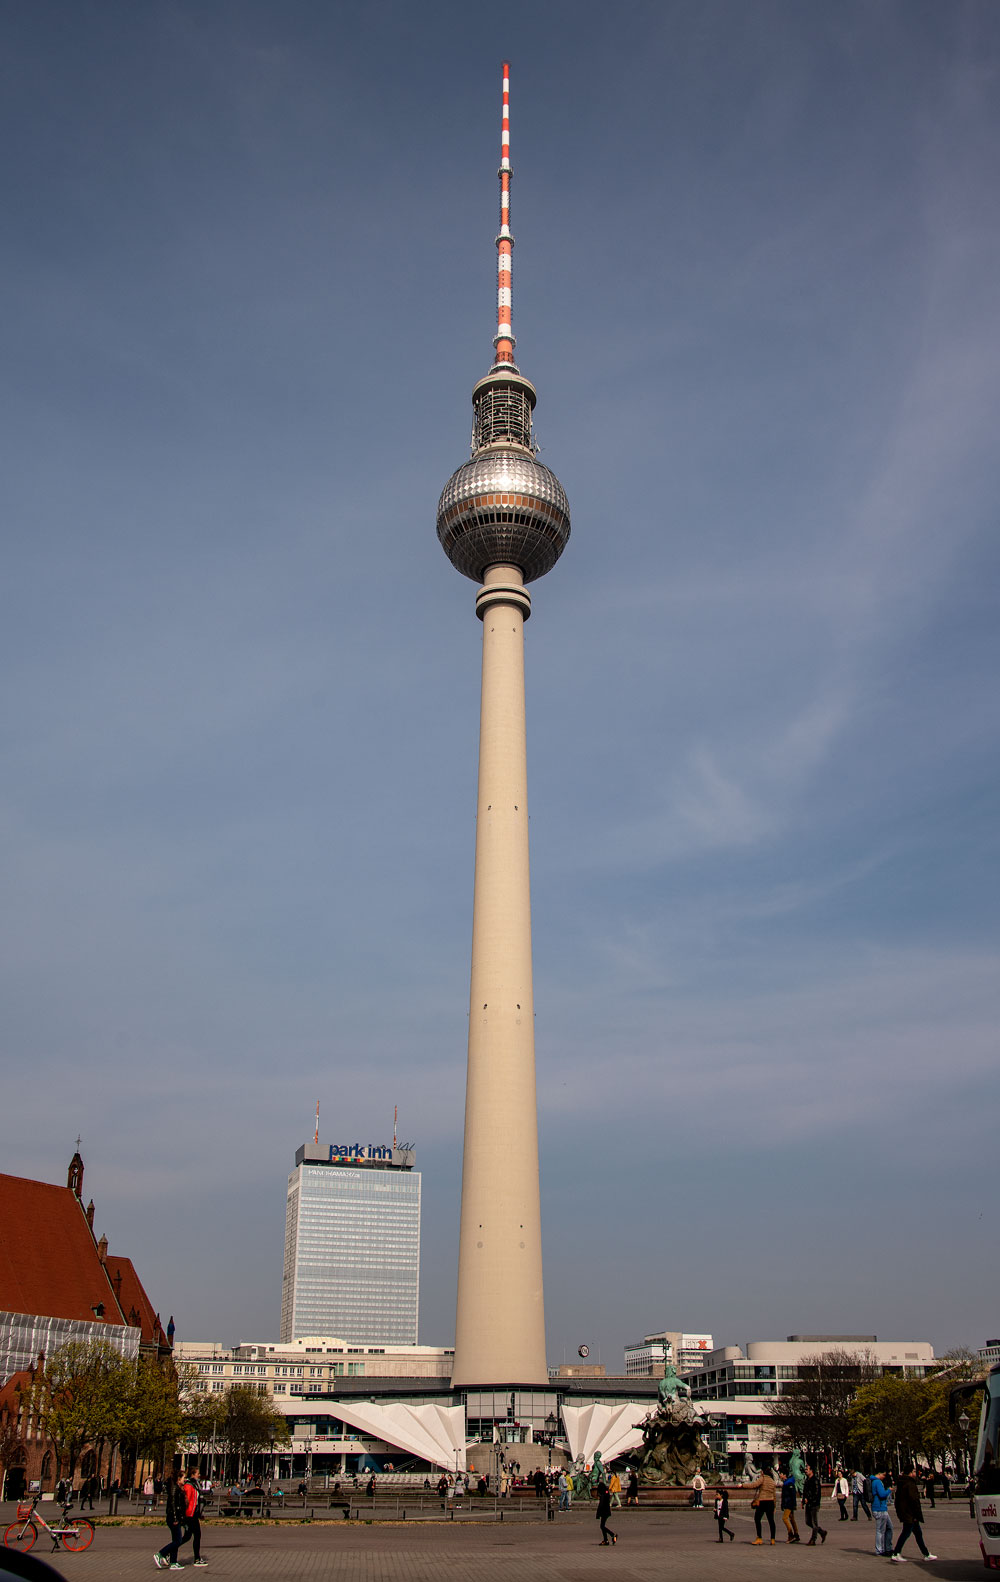 Weekend guide Berlin restaurant guide hotel sights All rights reserved resorochaventyr.se TV tower